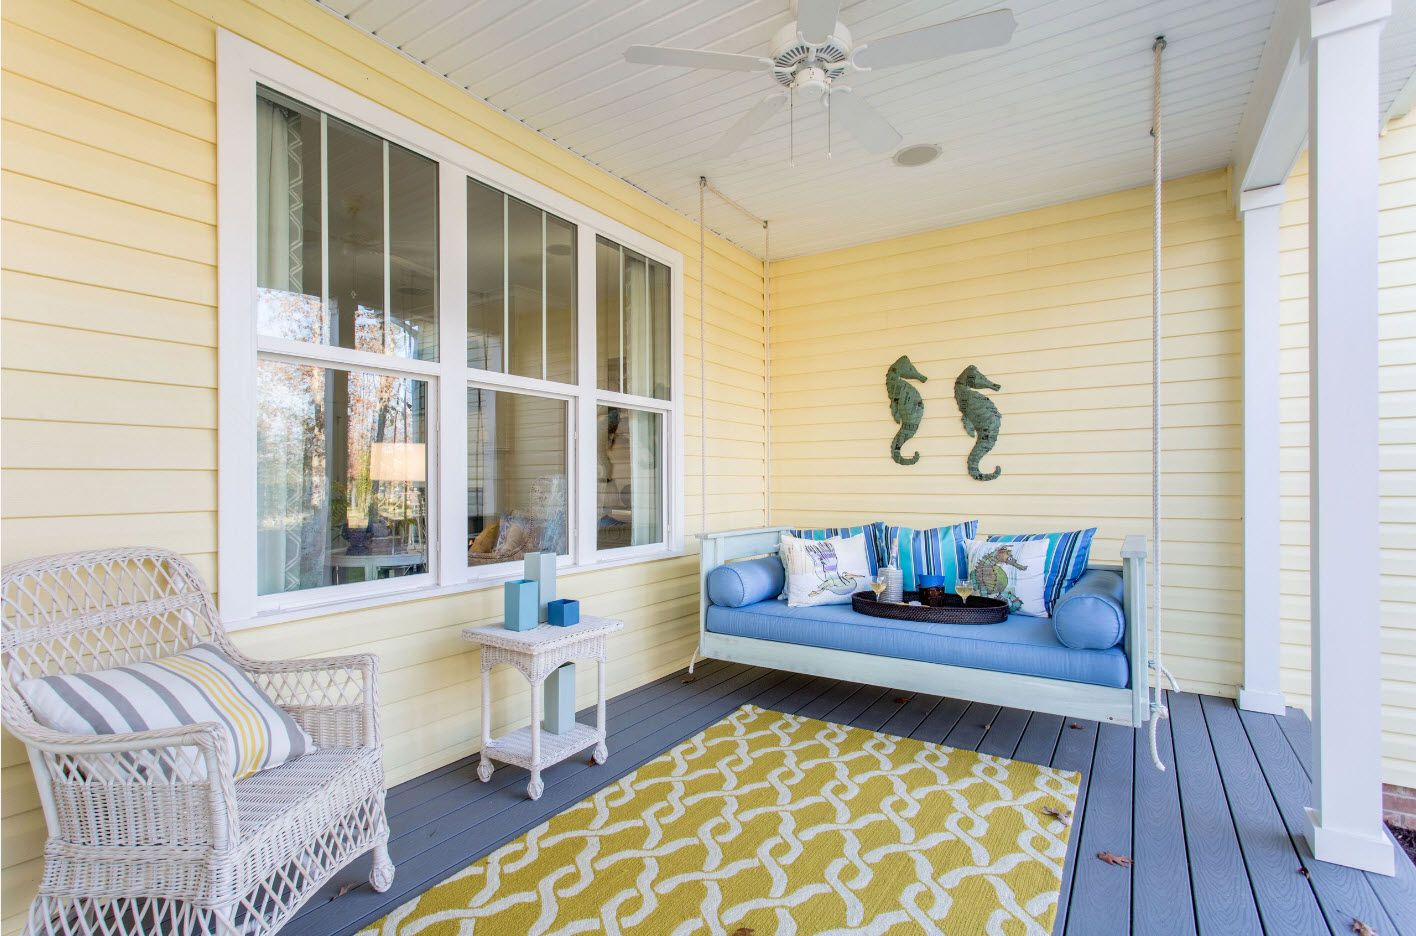 Pale yellow wooden panelling of the house's facade and a rug at the wooden platform of the furnished porch